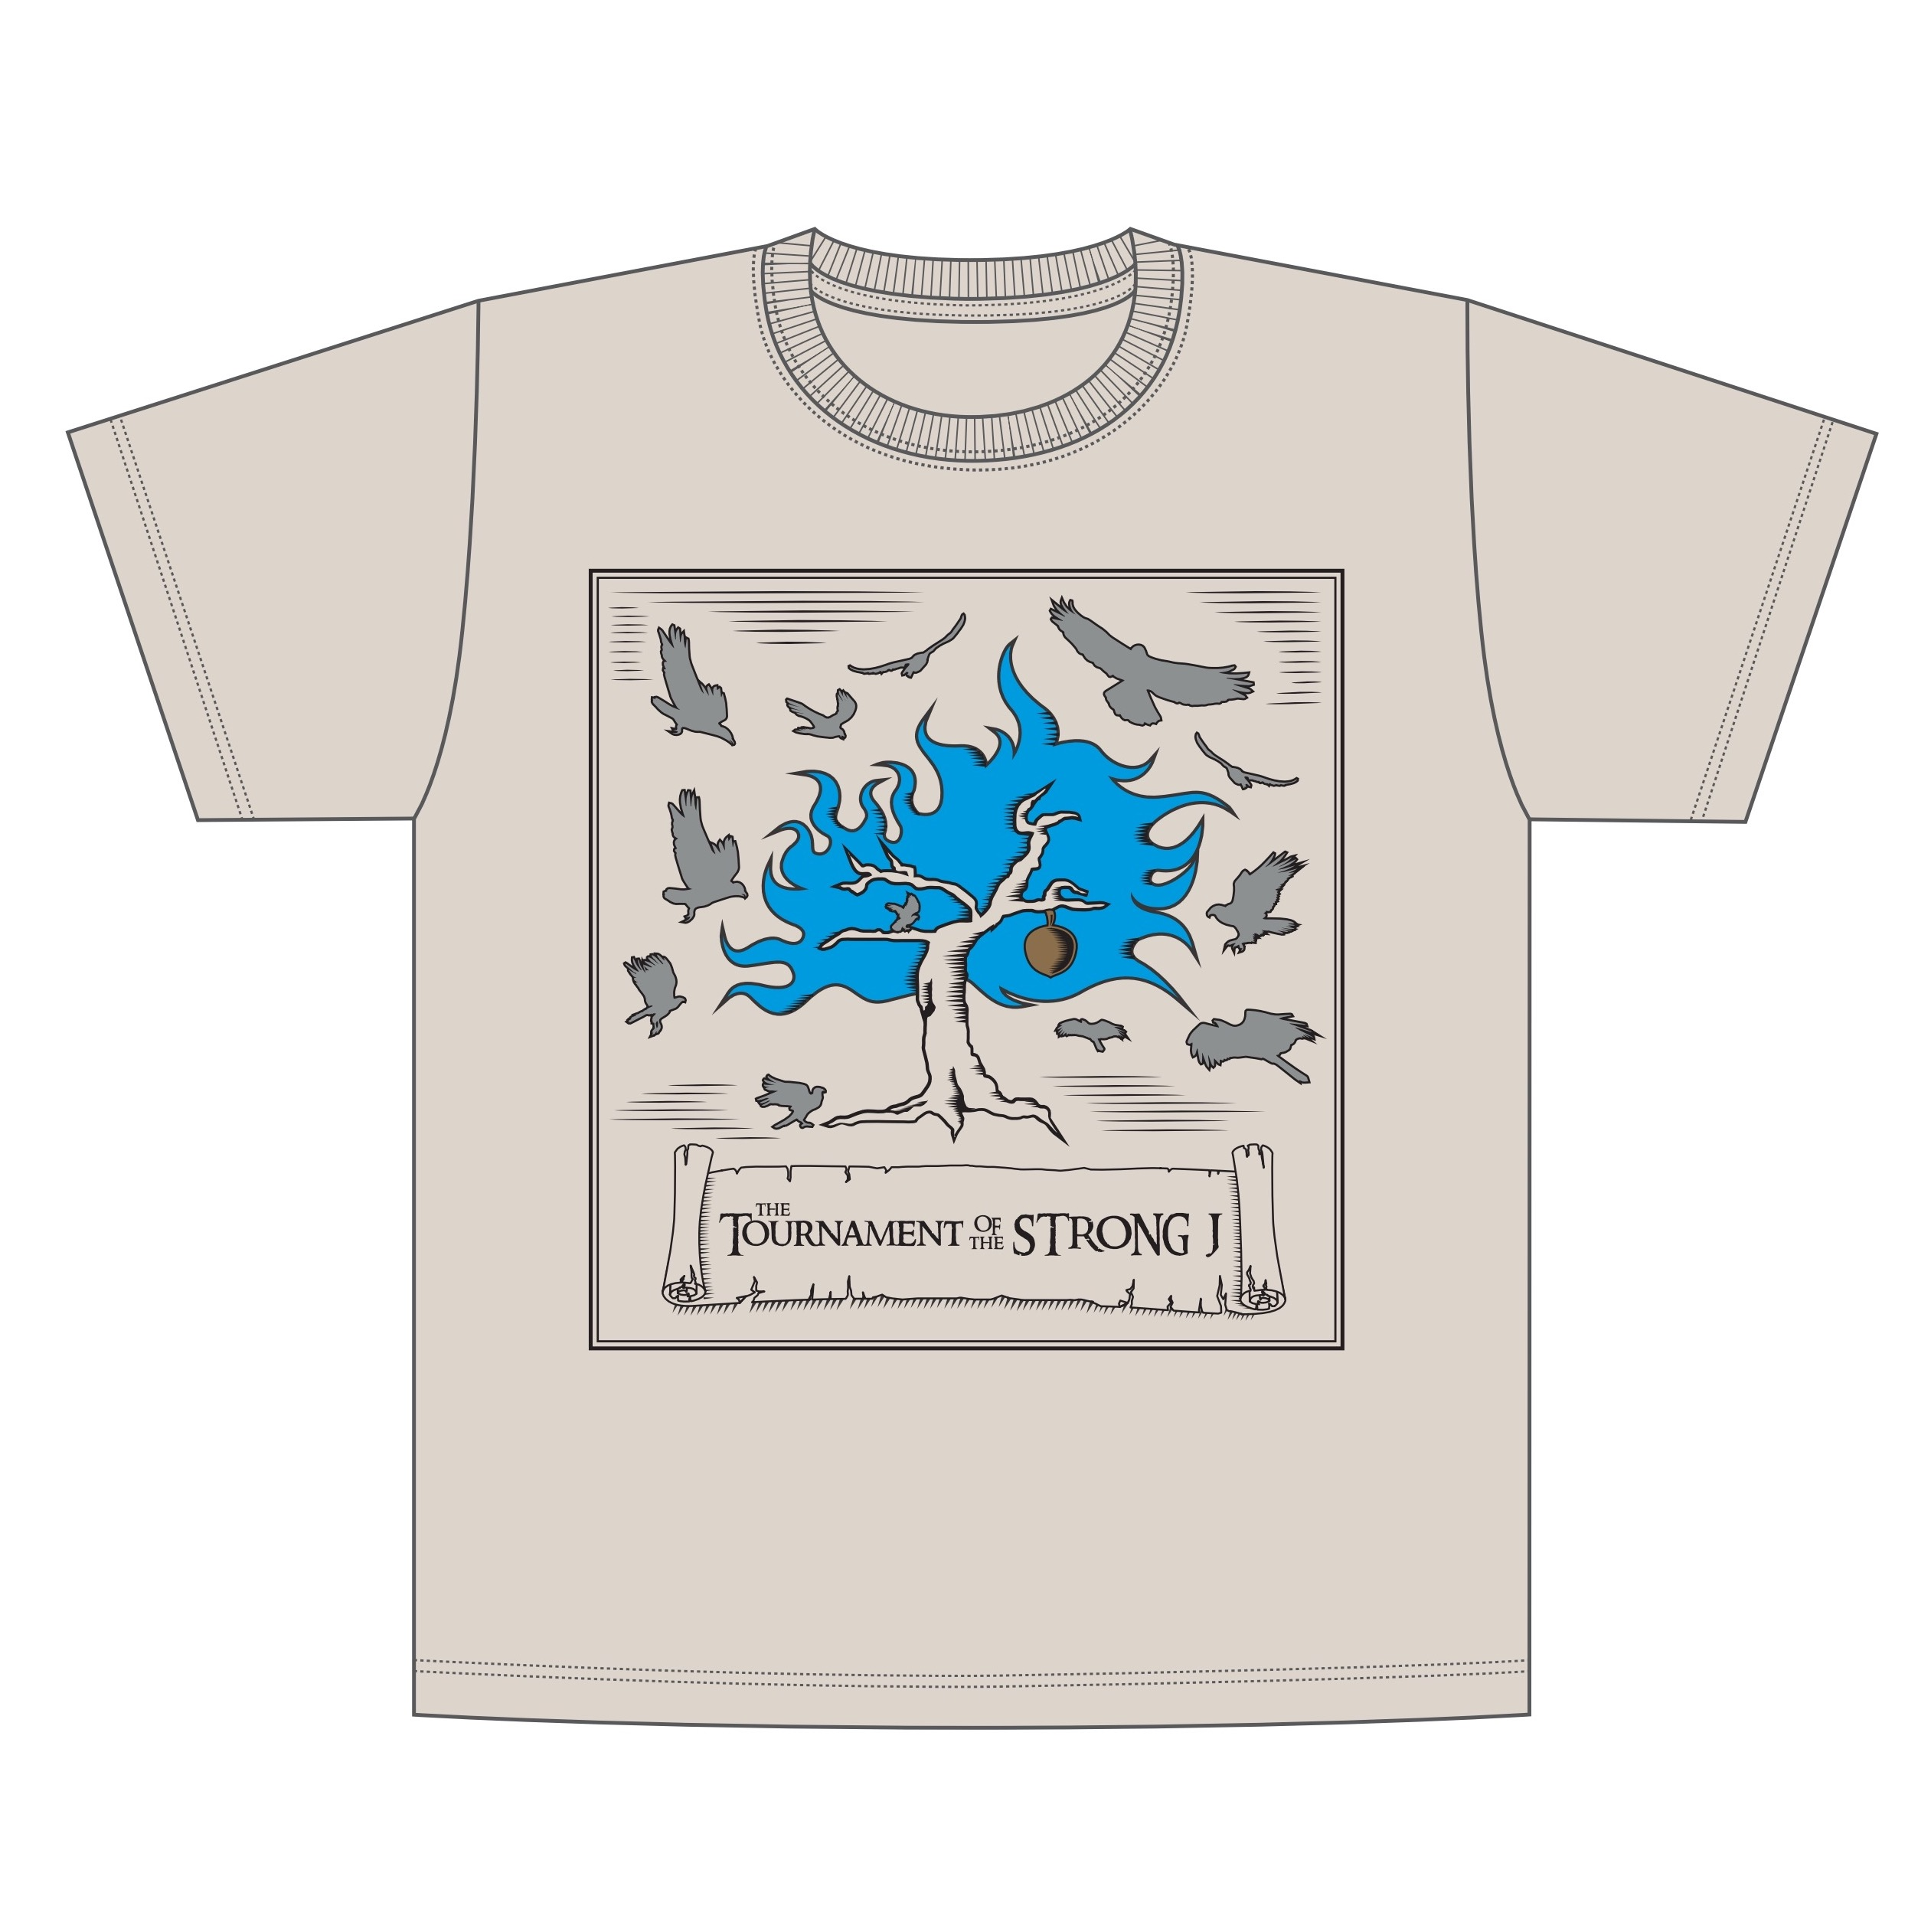 「ReOStaff株式会社コラボグッズ」THE TOURNAMENT OF THE STRONG J Tシャツ